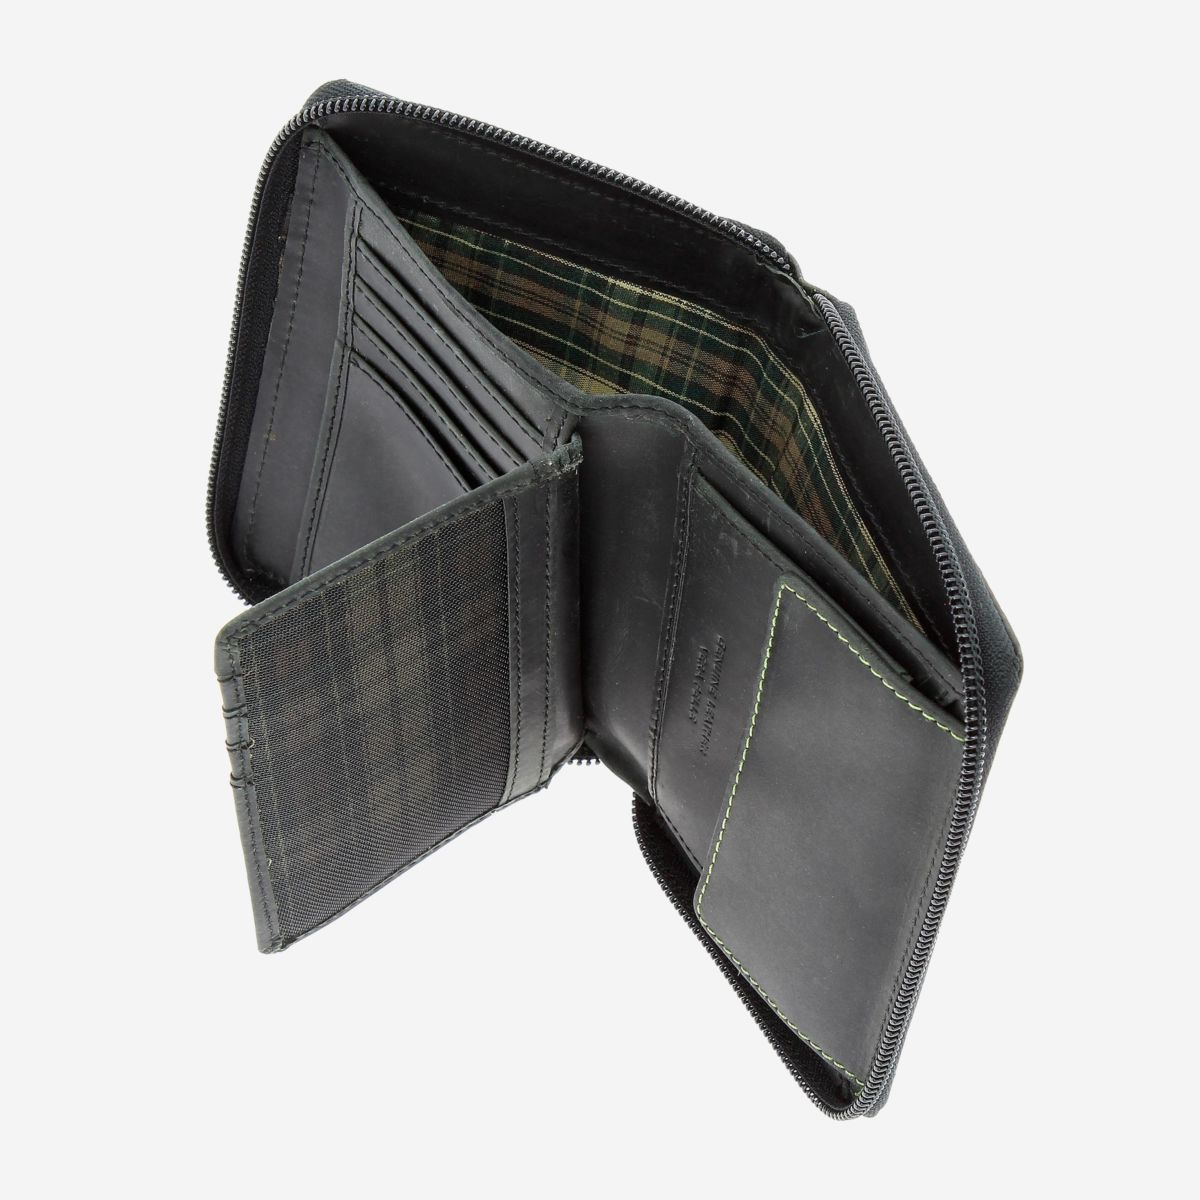 DuDu Mens Leather Wallet with Zip - Black